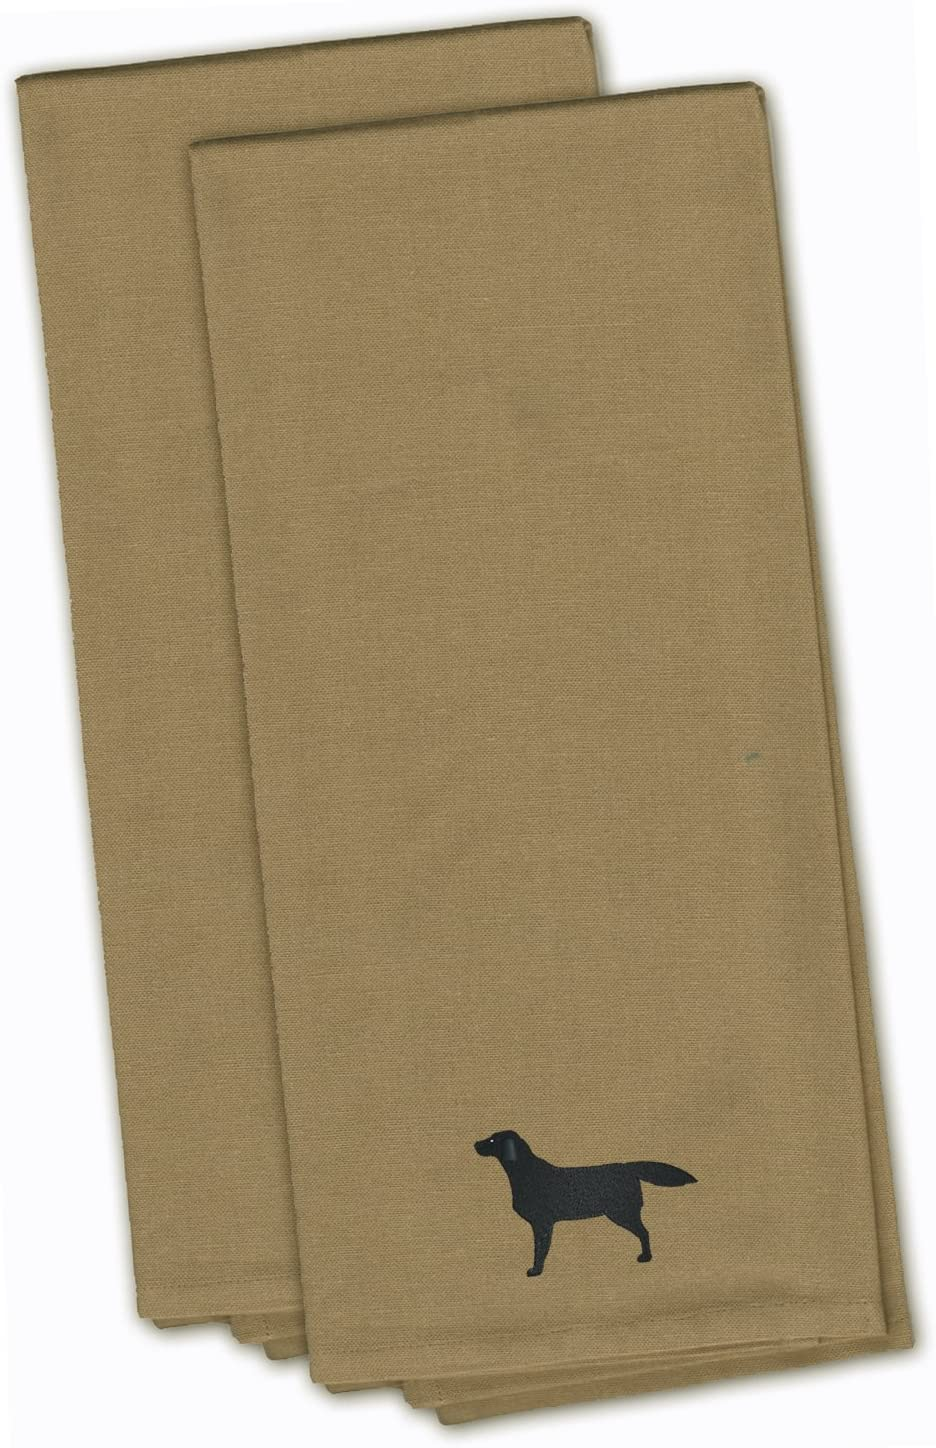 Amazon Com Caroline S Treasures Bb3408tntwe Black Labrador Retriever Tan Embroidered Kitchen Towel Set Of 2 19 X 25 Multicolor Kitchen Dining